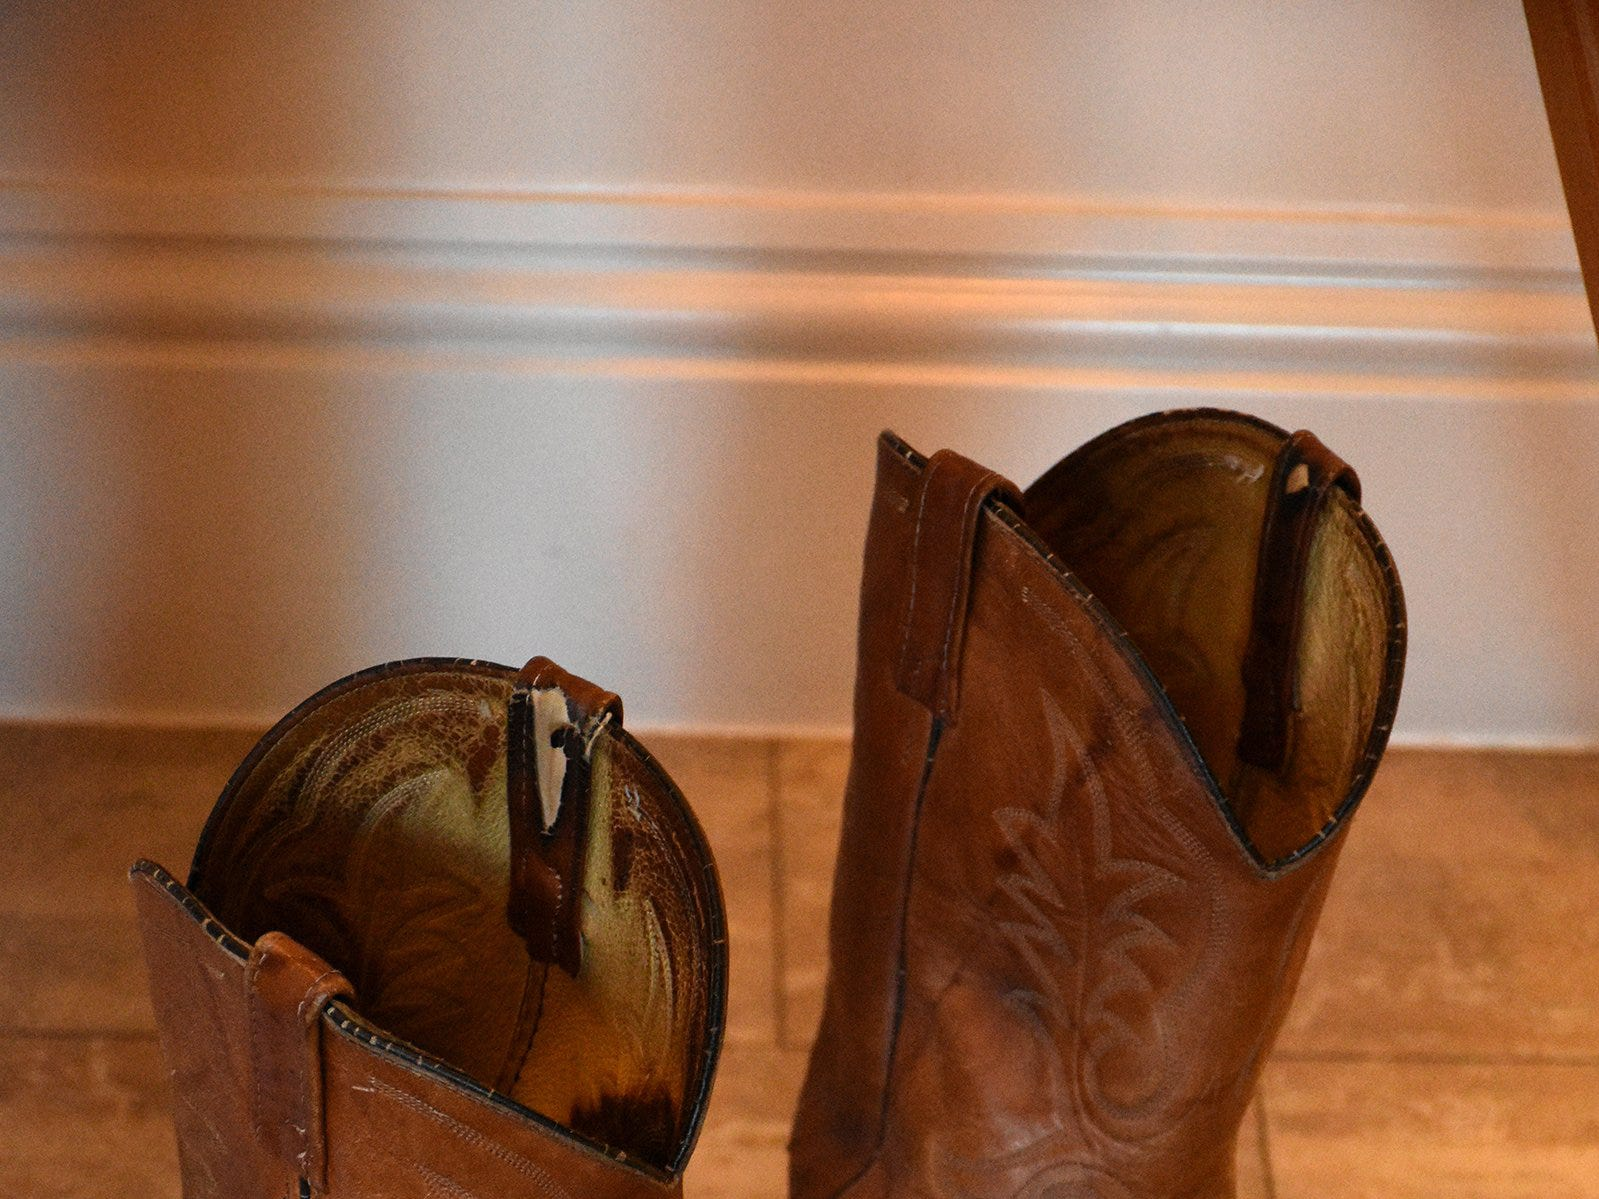 Herb's cowboy boots are displayed in the lobby. The life of iconic island architect Herb Savage was celebrated in a ceremony Sunday afternoon at the Rose History Auditorium, with military honors and reminisces from family and friends.